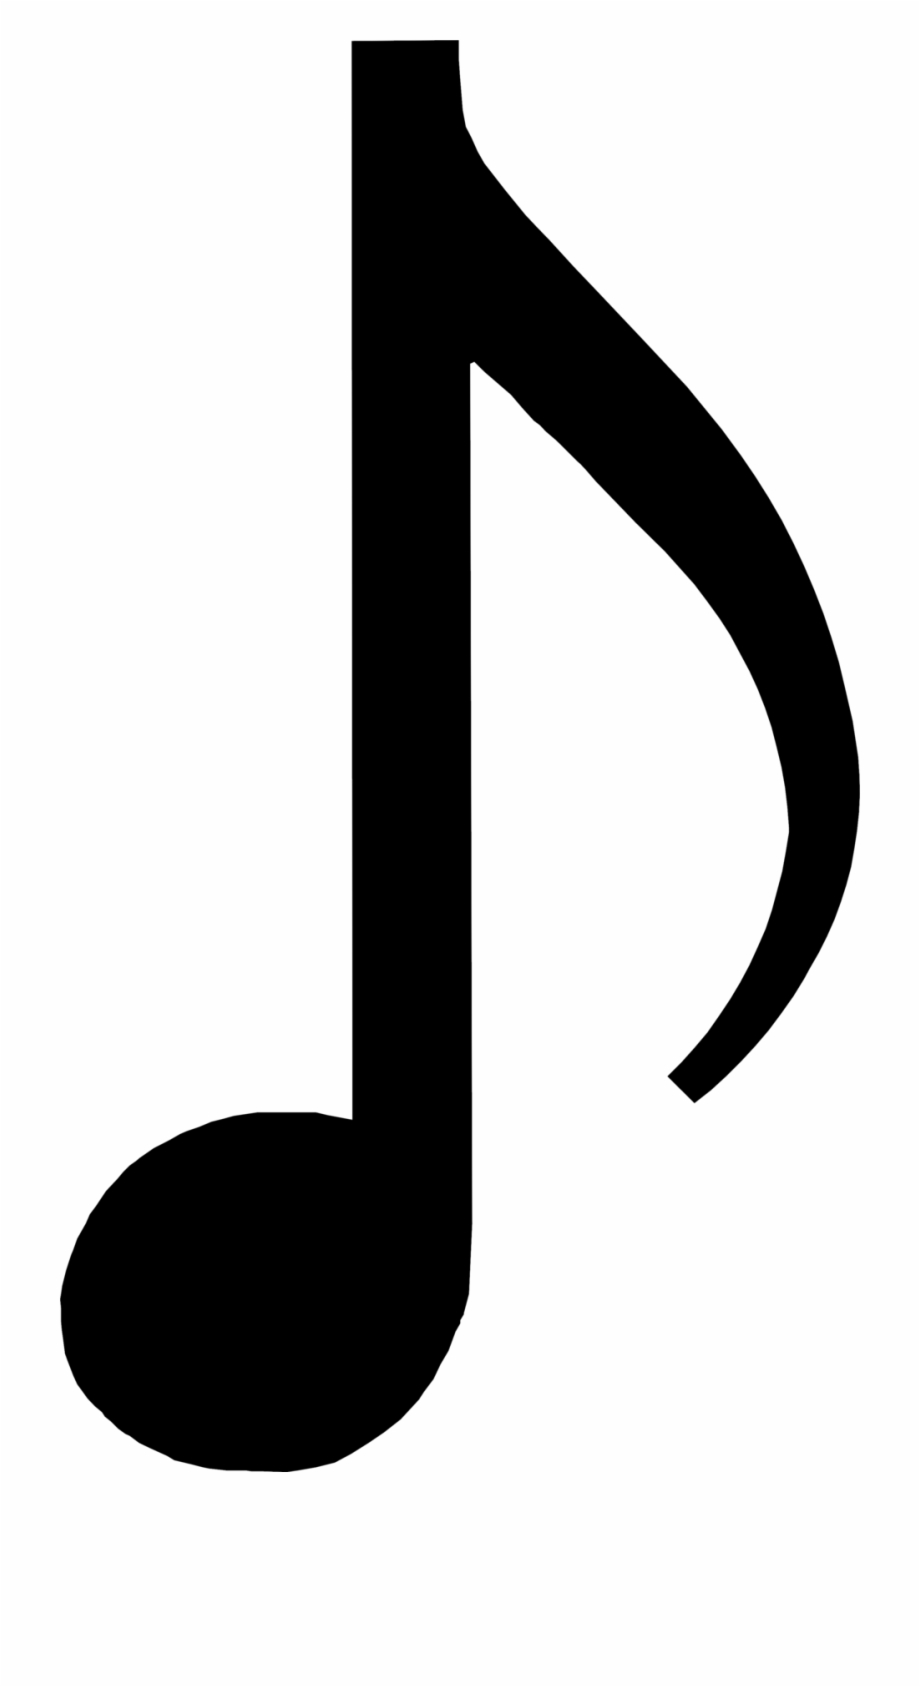 Black music notes clipart black and white library Music Notes Overlay Transparent Png - Black Music Note Clipart ... black and white library